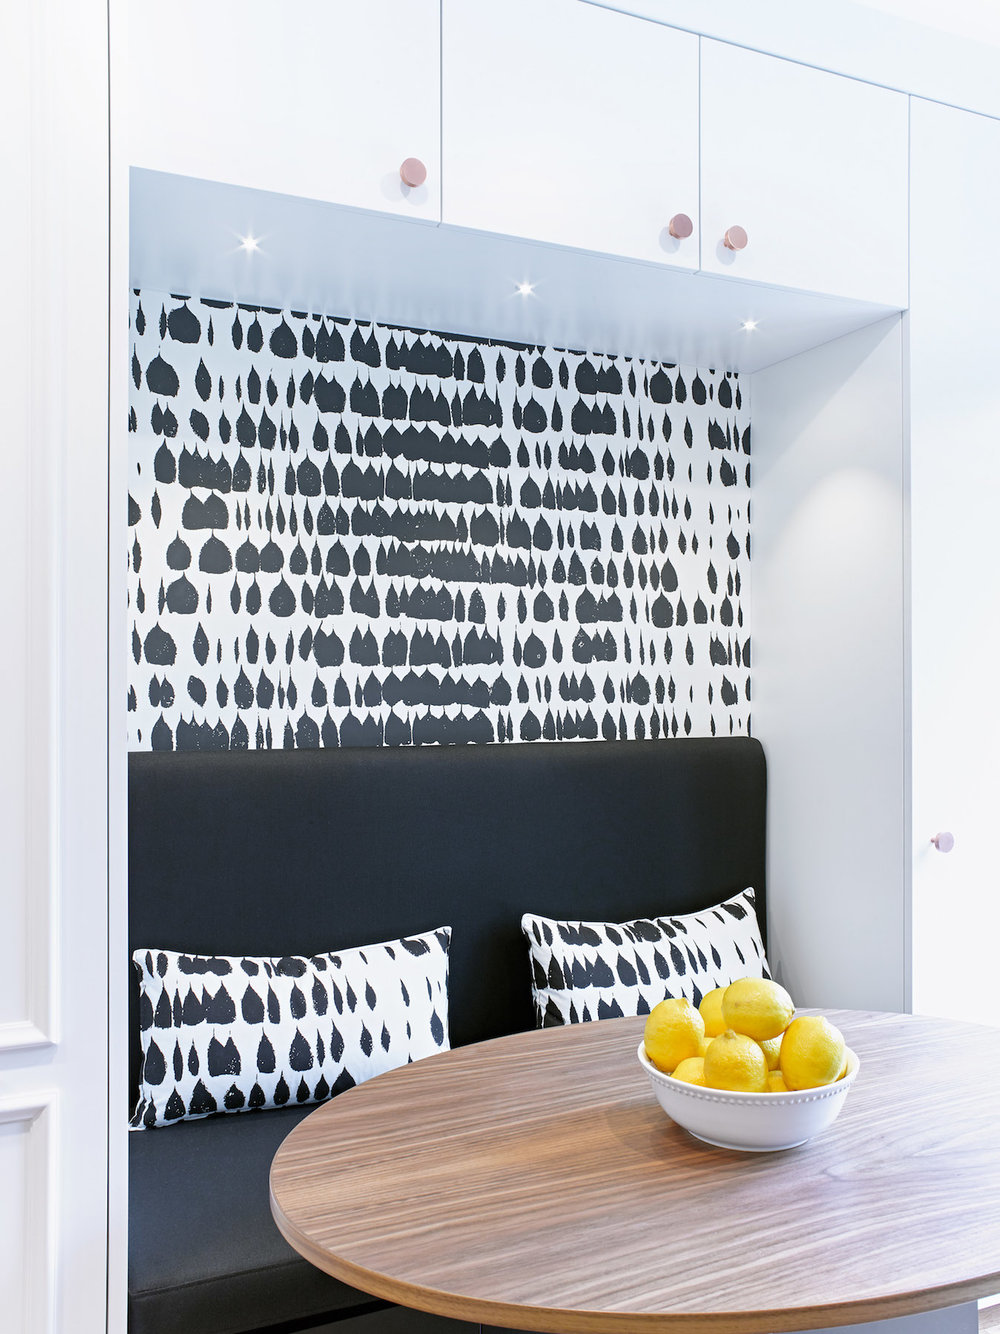 Built in Banquette with black and white wall paper